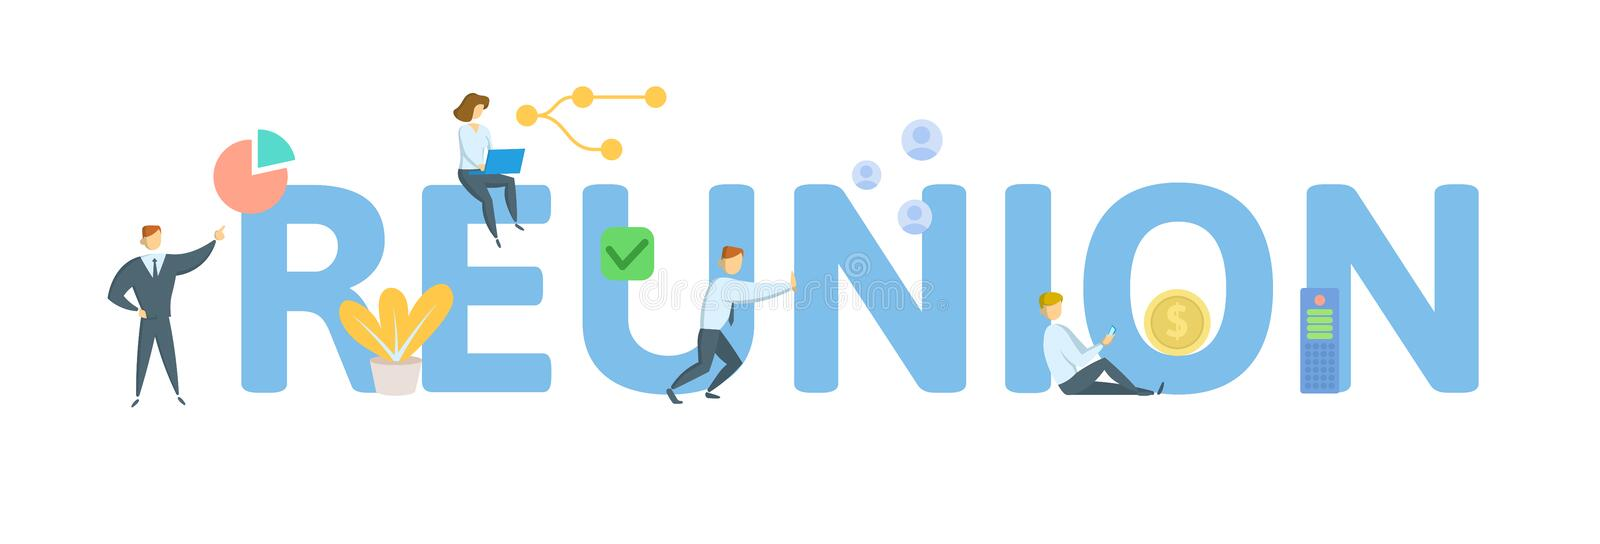 REUNION. Concept with people, letters and icons. Flat vector illustration. Isolated on white background. REUNION. Concept with people, letters and icons vector illustration